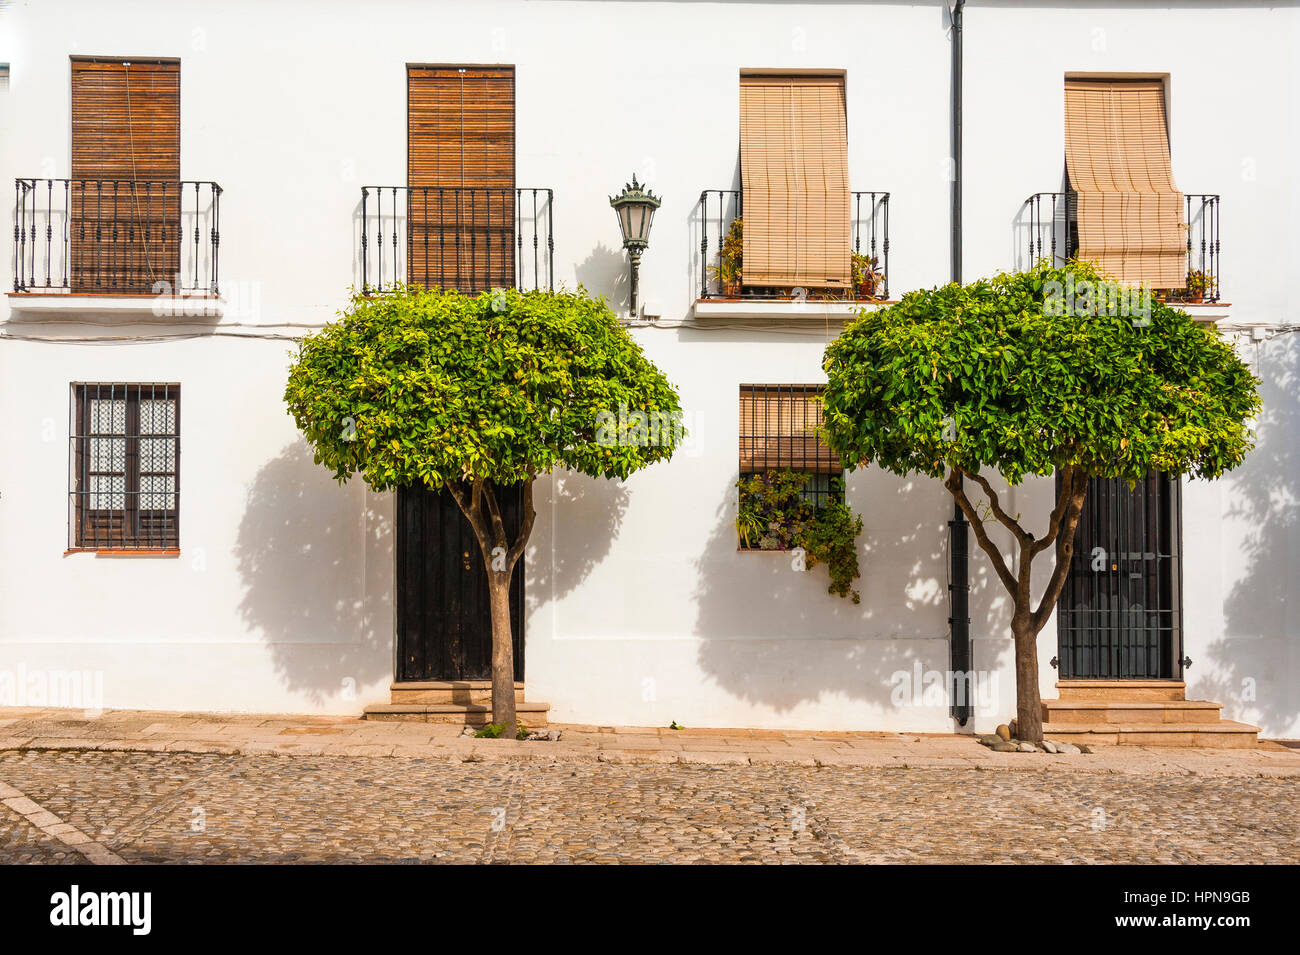 front of a white house and orange trees in Ronda, province of Malaga, Andalusia, Spain - Stock Image